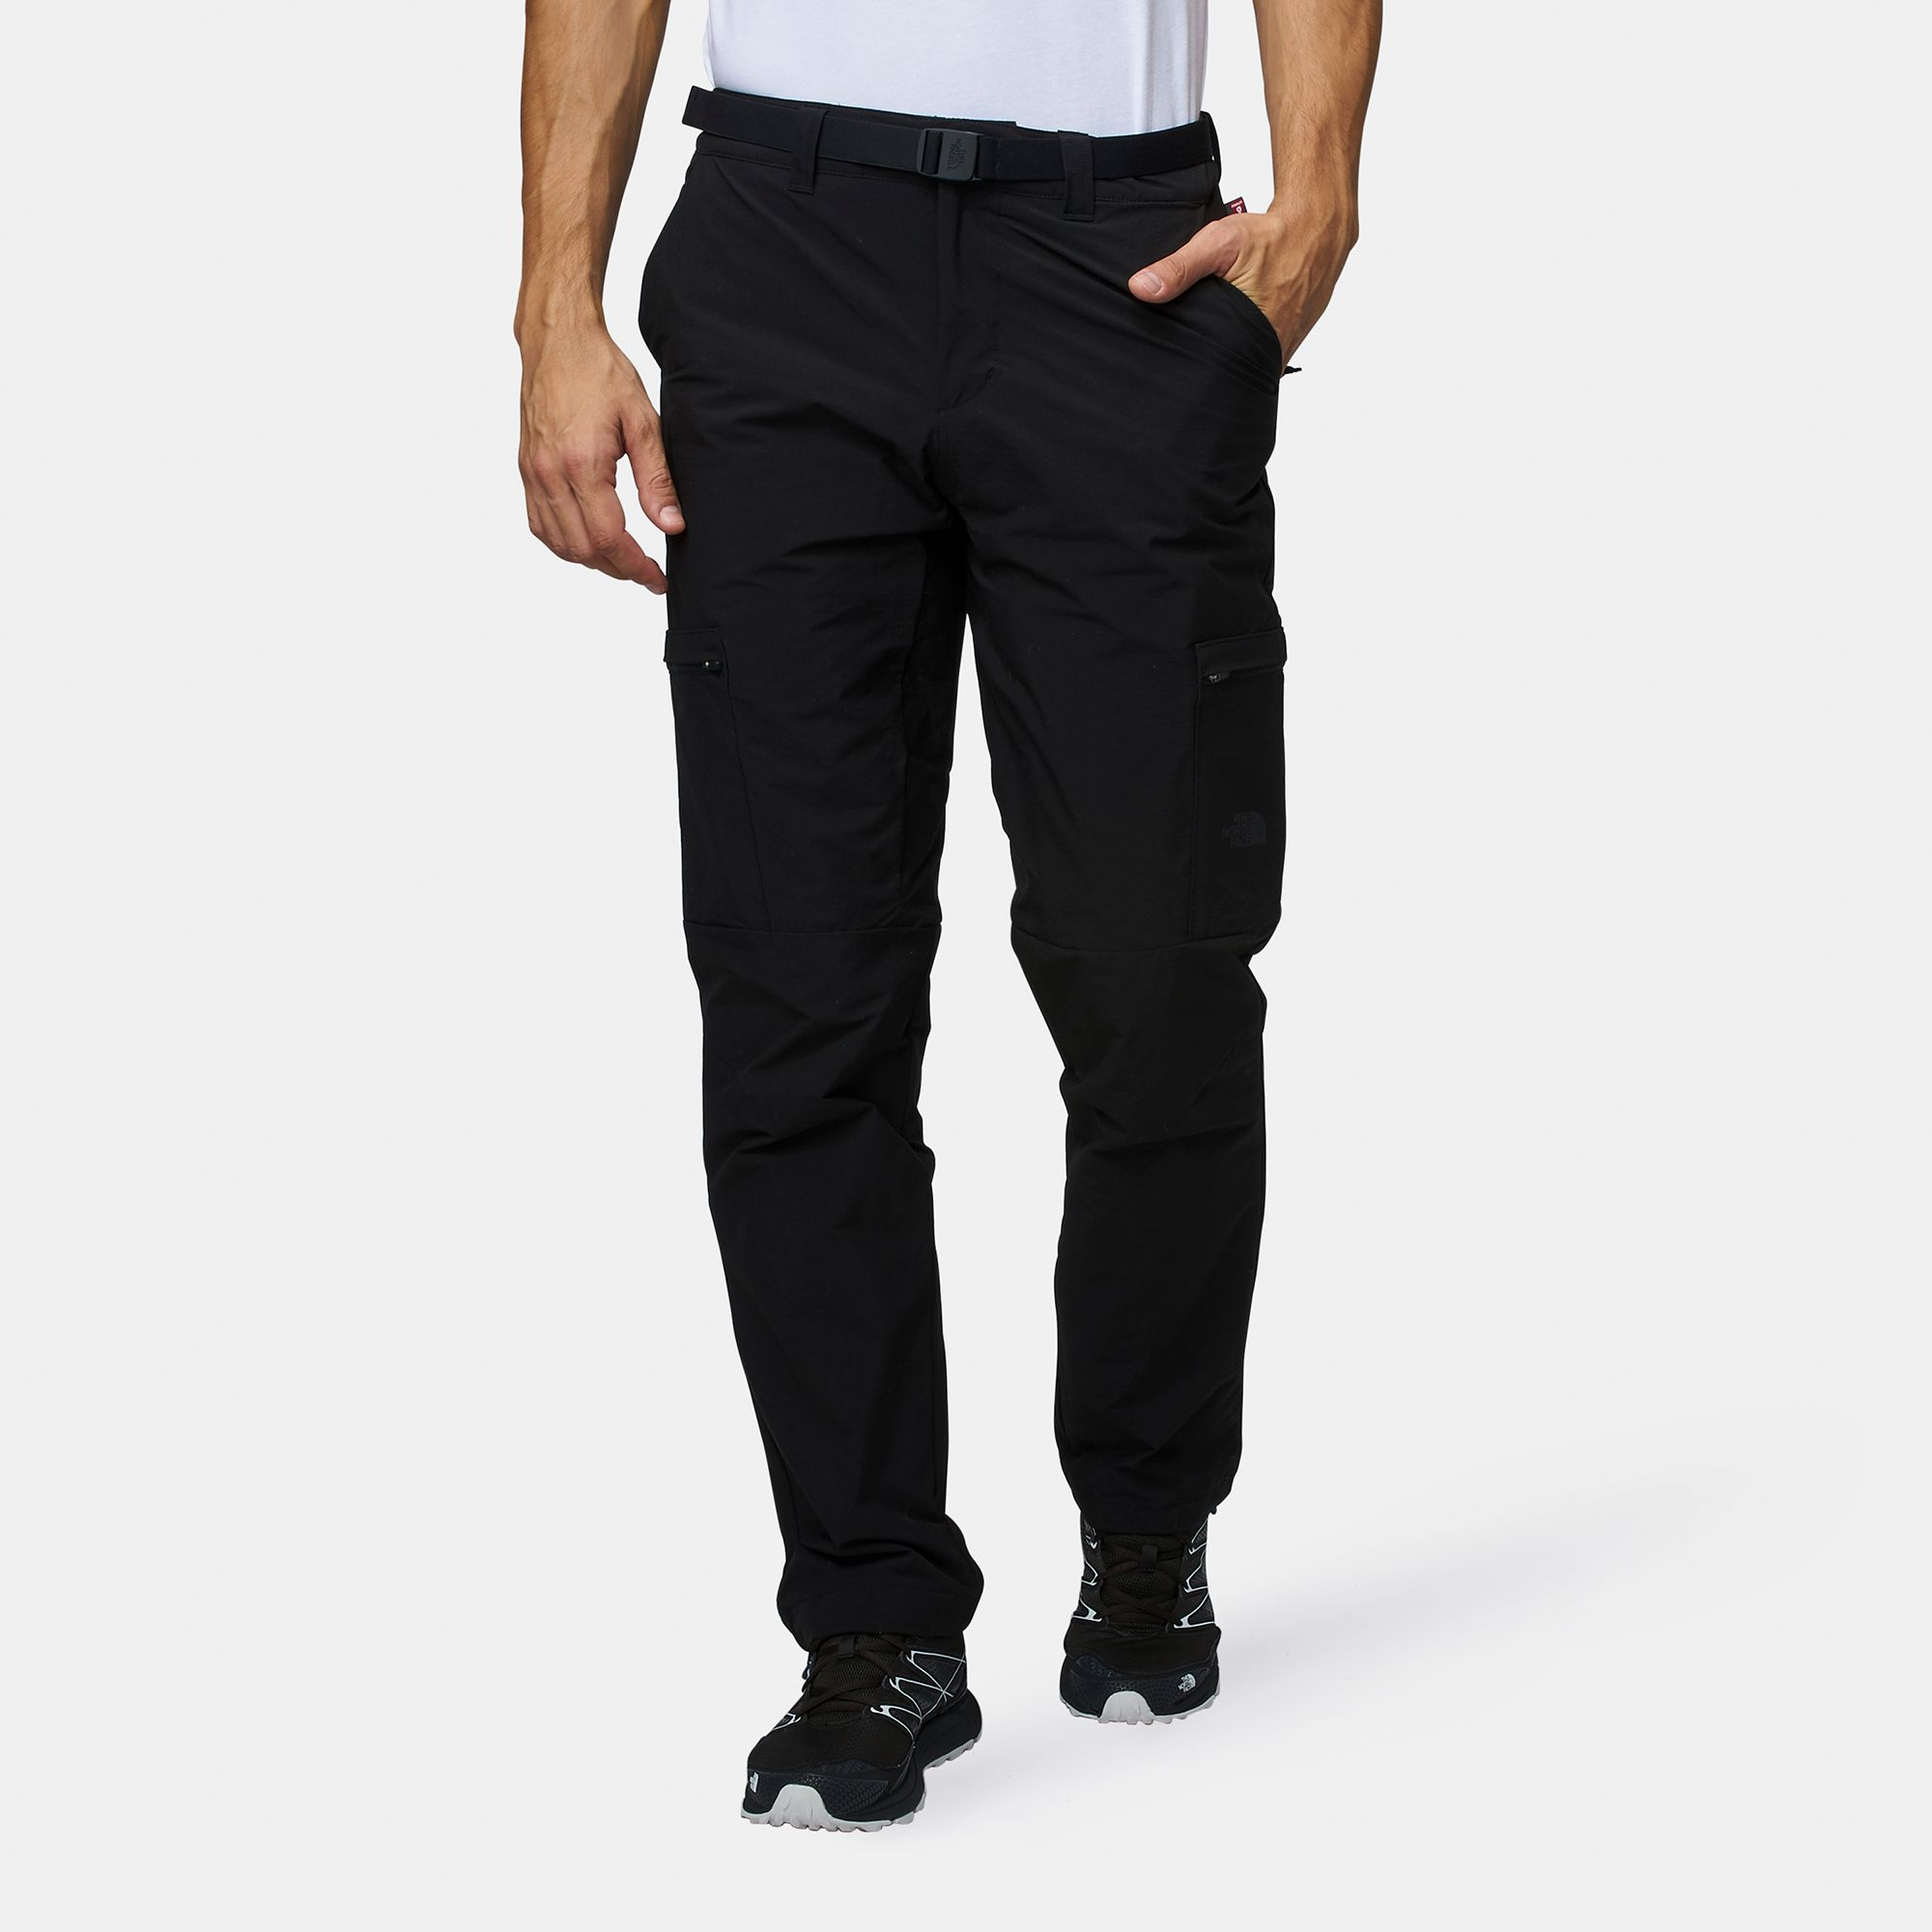 Shop Black The North Face Winter Exploration Cargo Pants for Mens by ... 8c1b7b85f73c